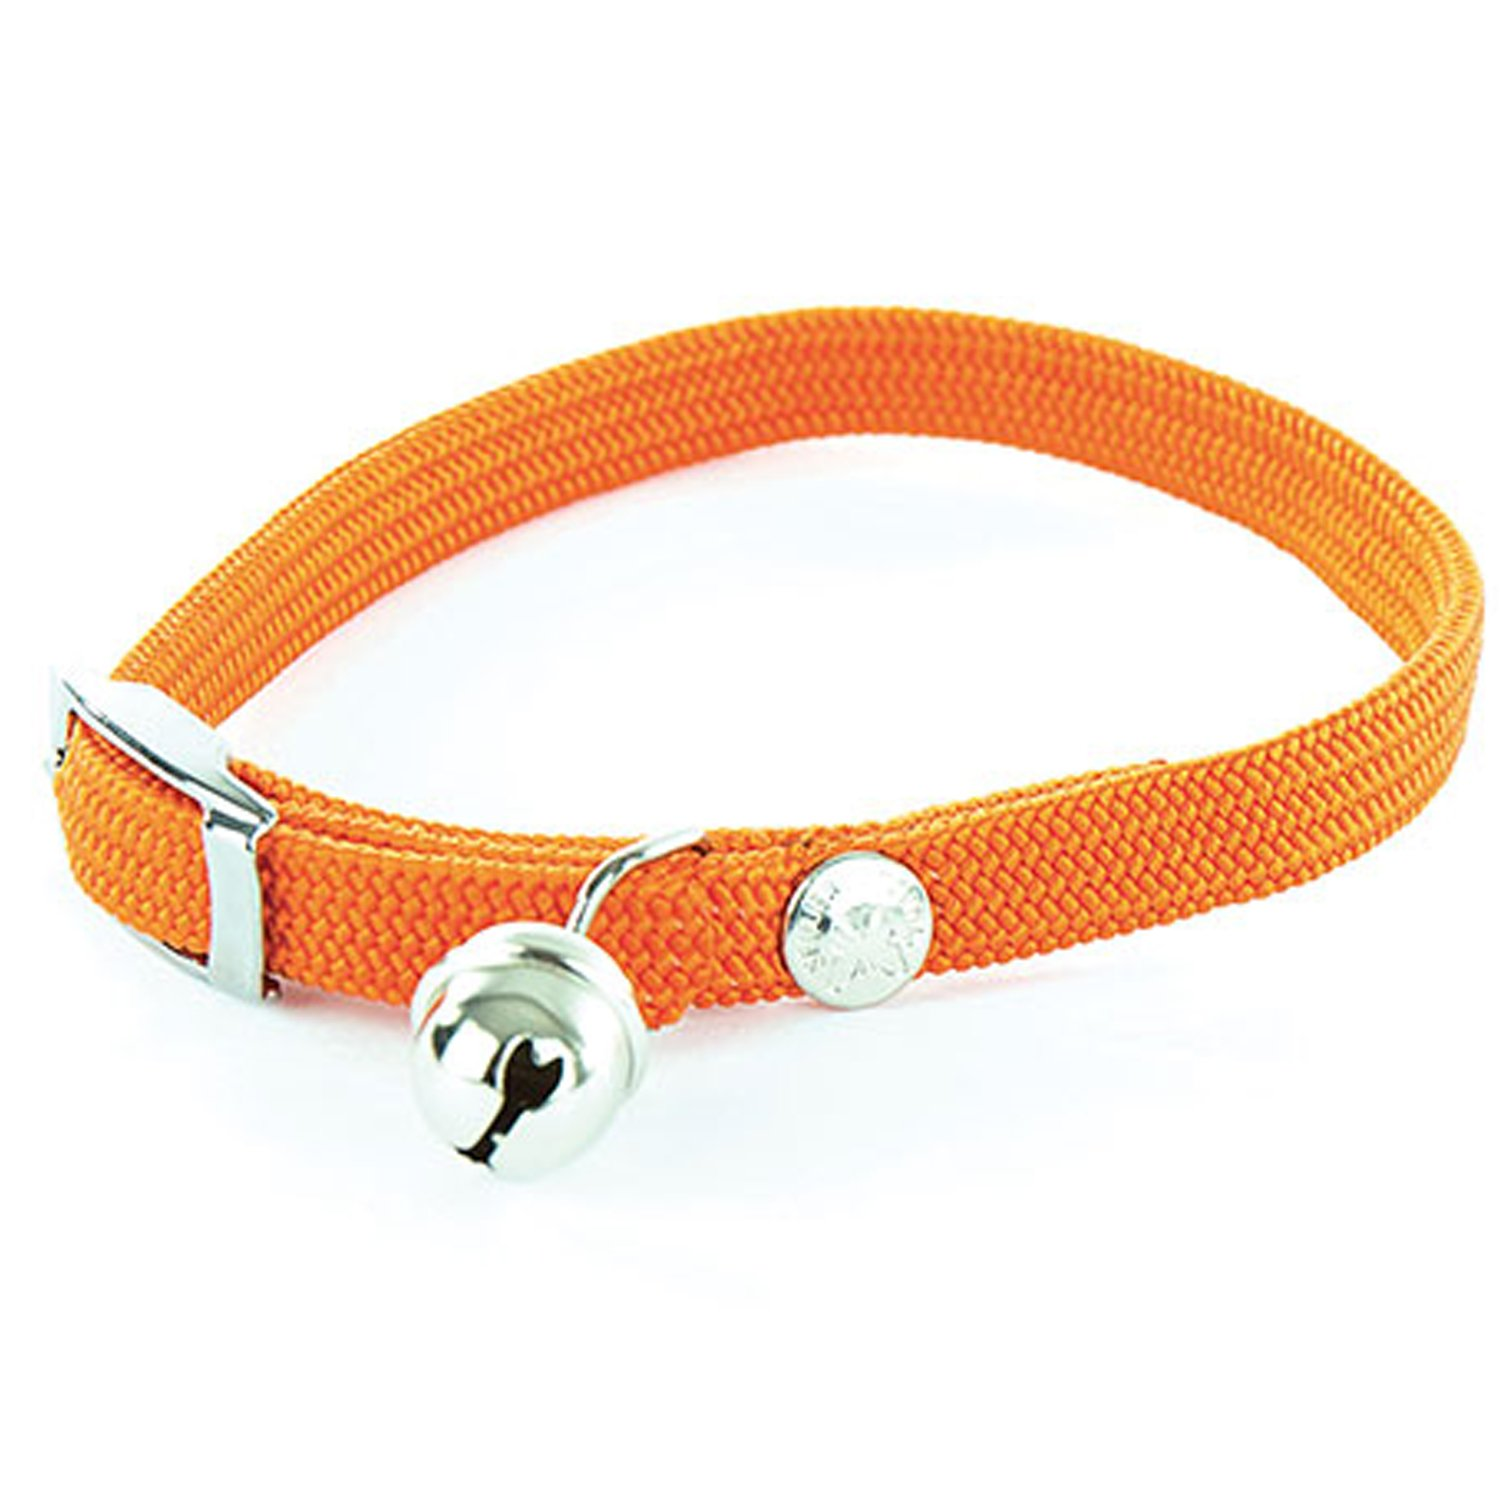 Collier chat nylon élastique - Orange Martin Sellier